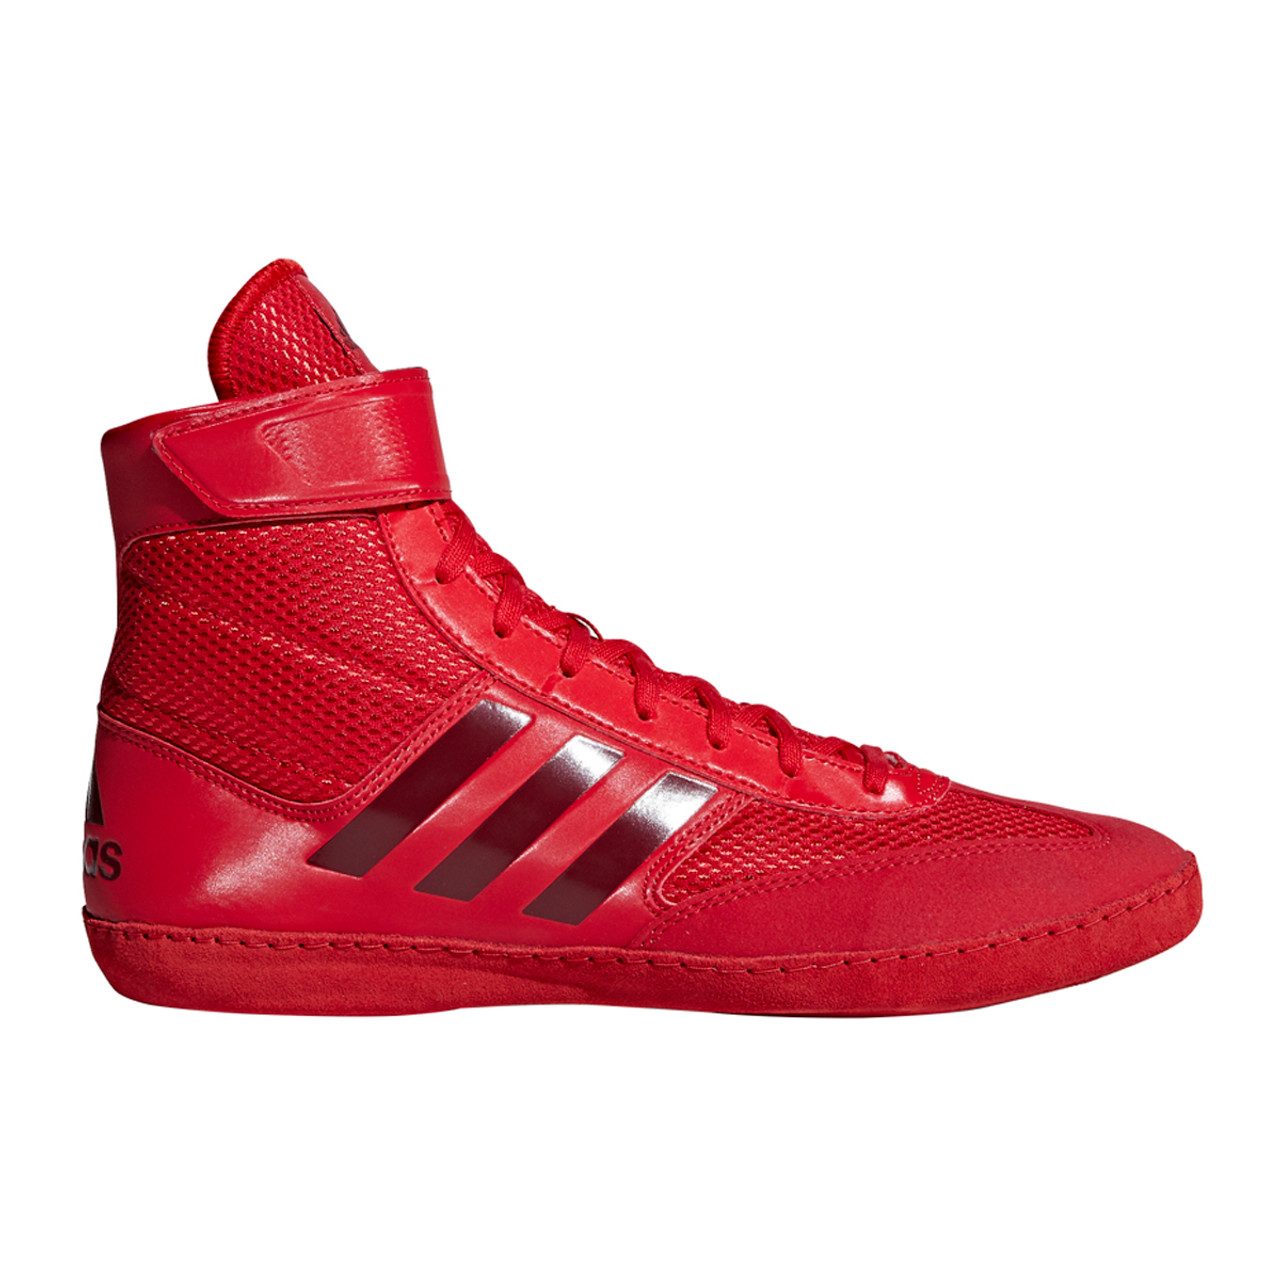 1d56a9fbac3 france adidas mens mat wizard 4 wrestling shoes red 37f33 853fa  spain  adidas combat speed 5 mens wrestling shoes ac7499 red 1fa8a c50f9